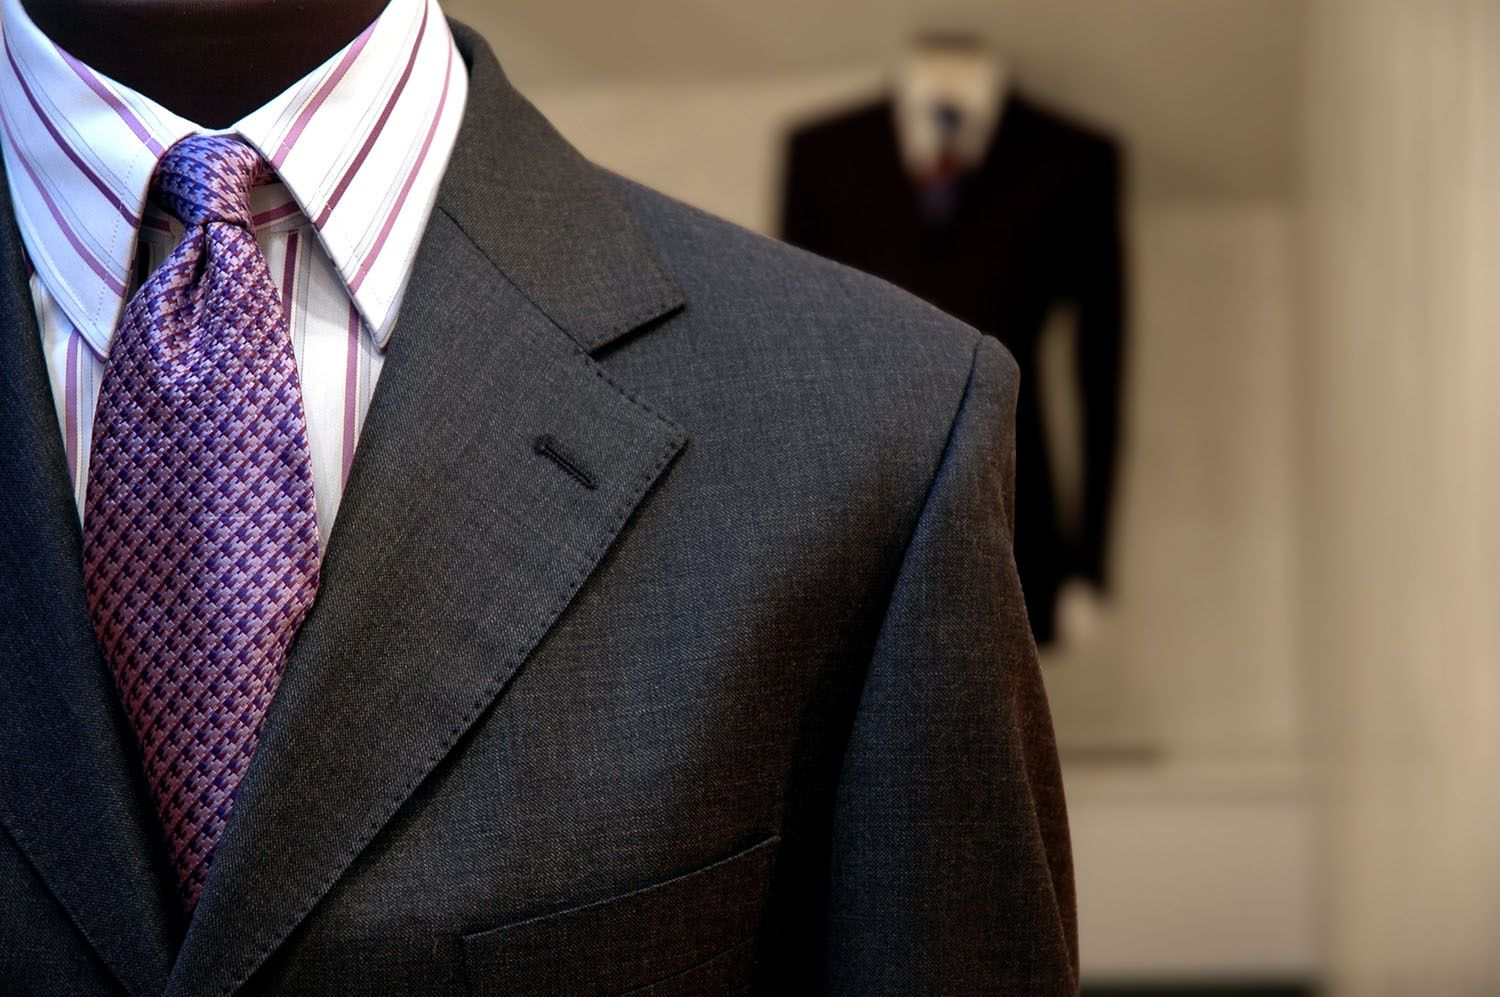 The custom-made suits are always tailored after taking the exact measurements carefully, which results in just the right fit. Usually in the case of custom-made suits, the tailors leave a small margin in case you gain or shed some pounds.http://thetailorynyc.blogspot.com/2015/12/3-reasons-why-getting-custom-tailored.html